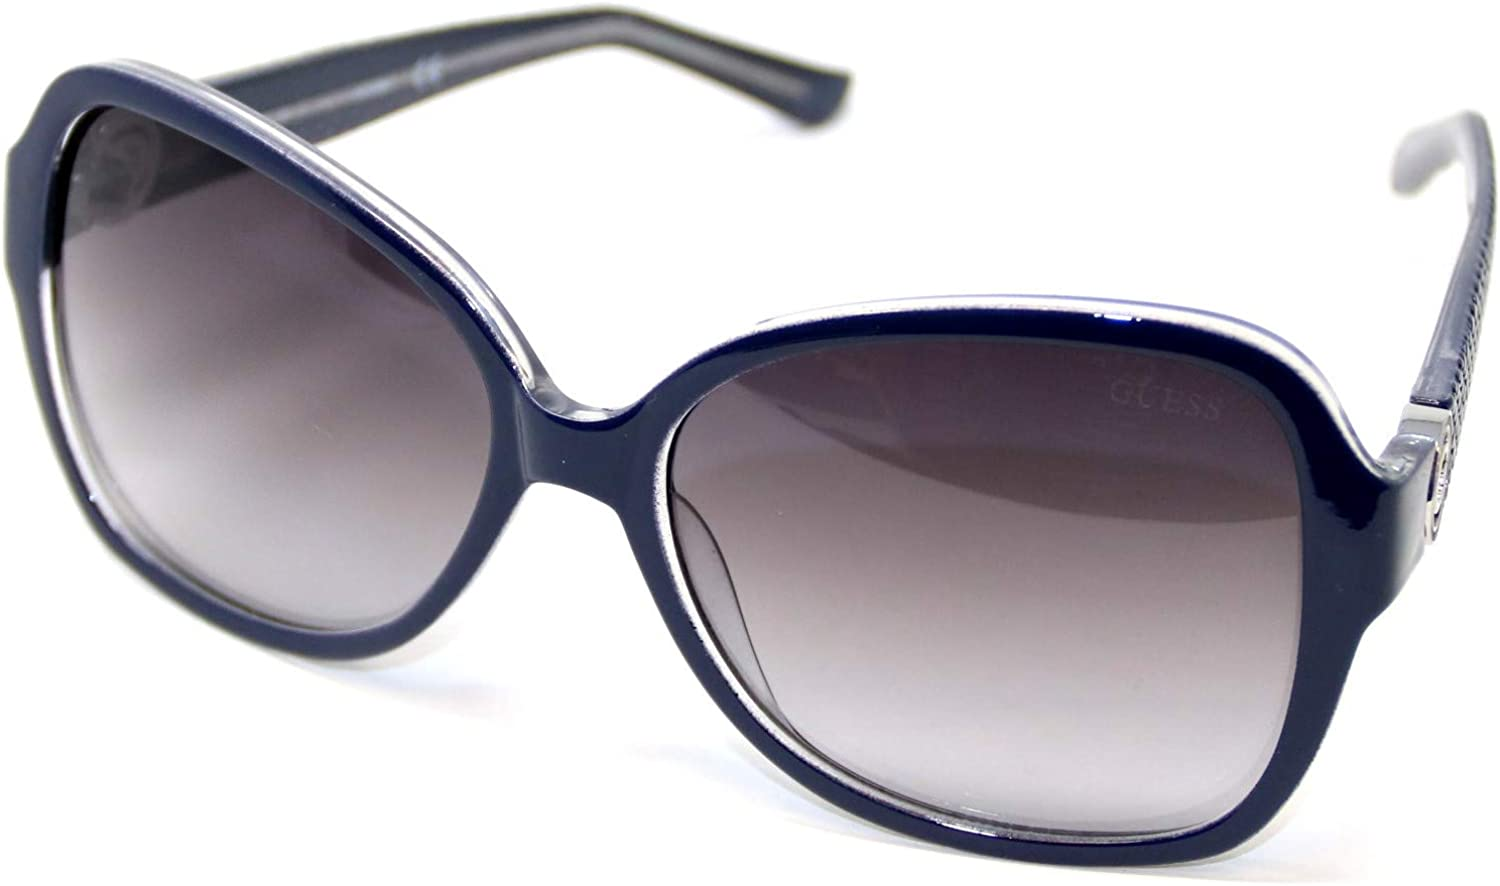 Guess GF027590B58 Women's Square Sunglasses Navy bluee with Grey Lens